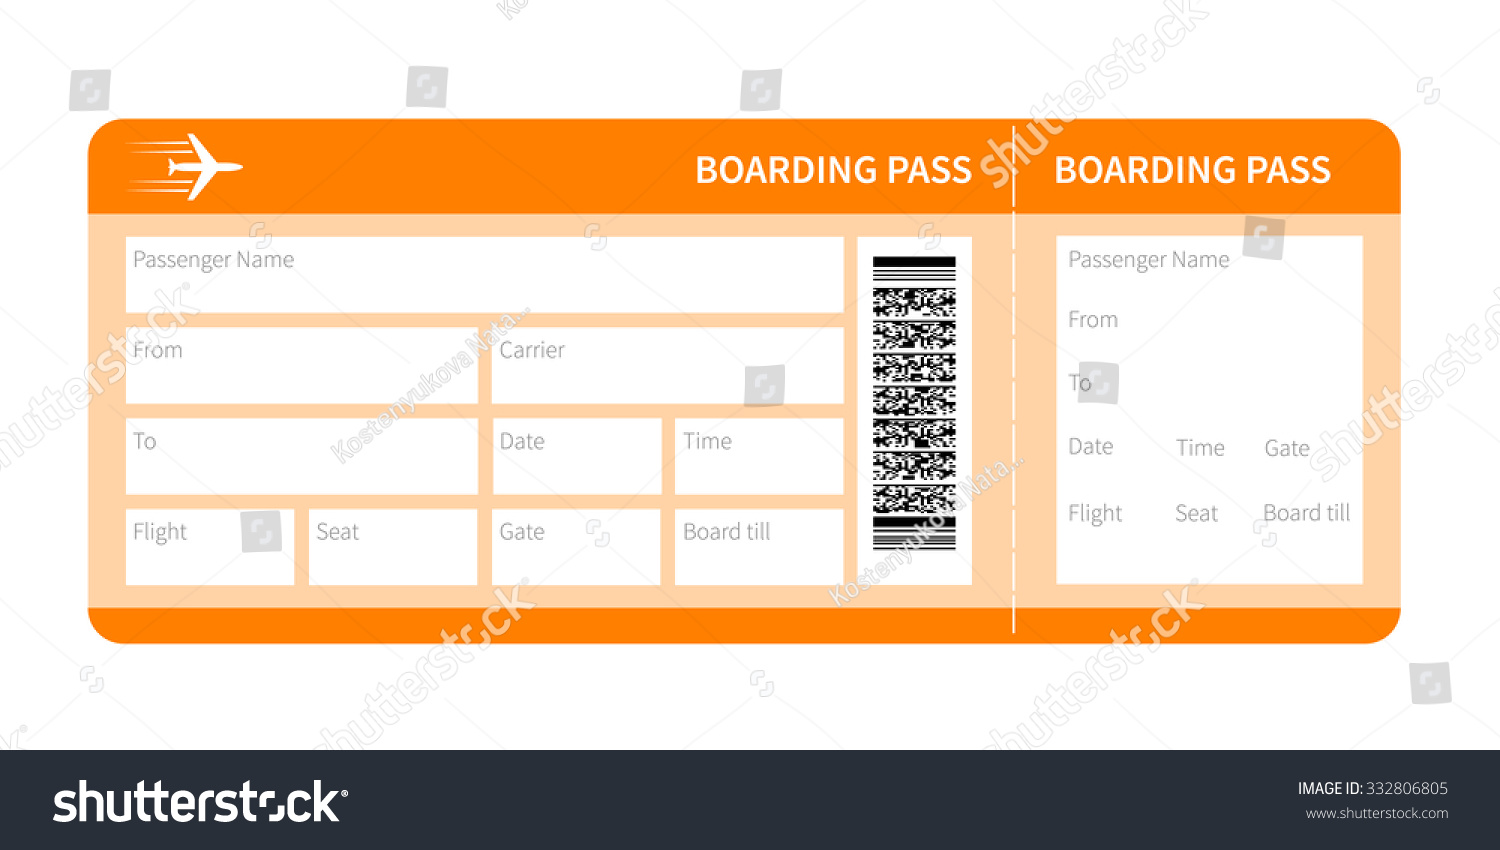 Blank Boarding Pass Template - Bing images